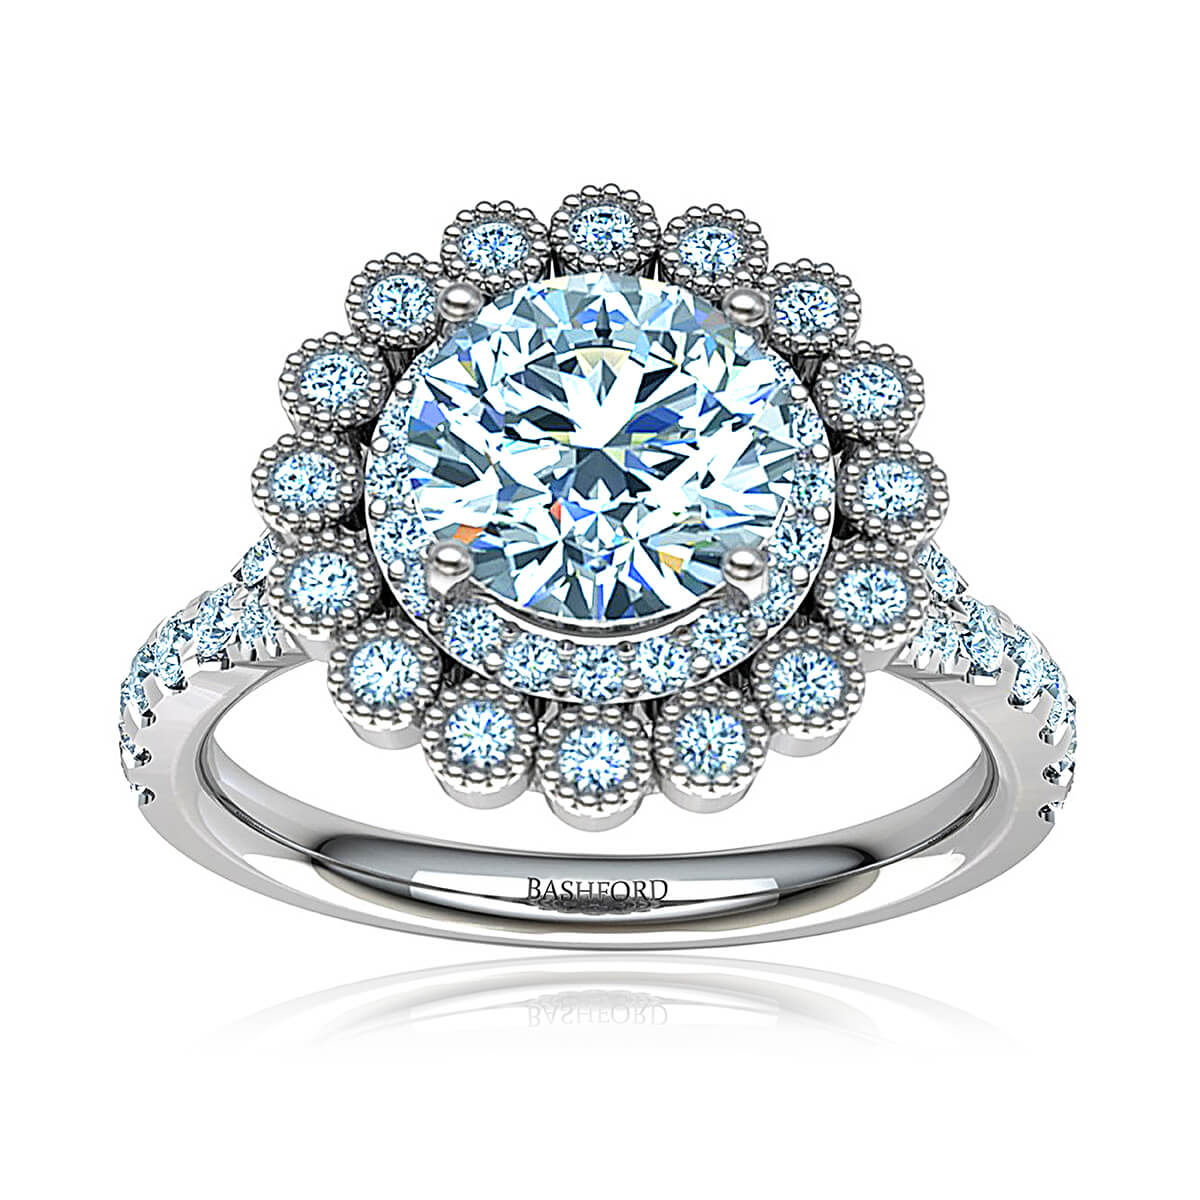 Tularosa Diamond Ring